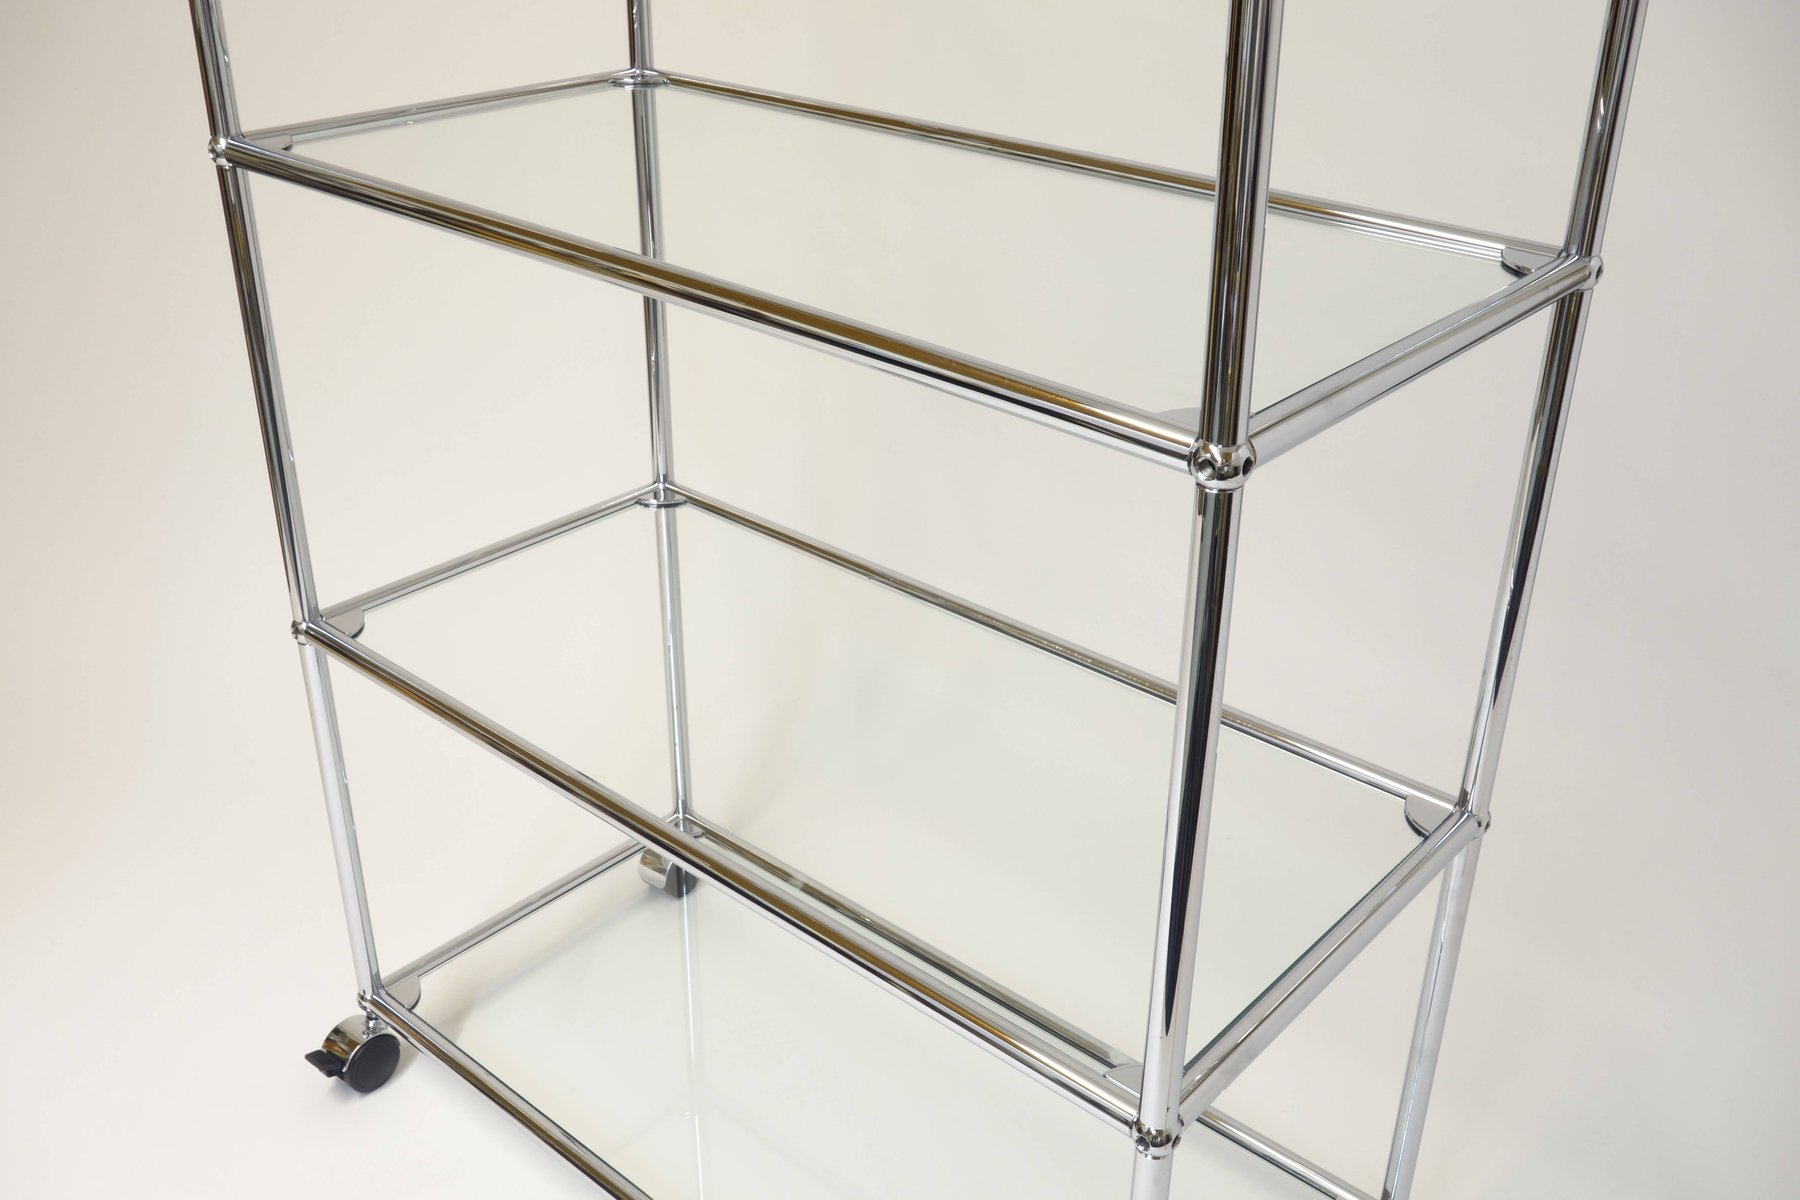 Glass Shelving Unit By Fritz Haller For USM Haller, 1985 Good Ideas